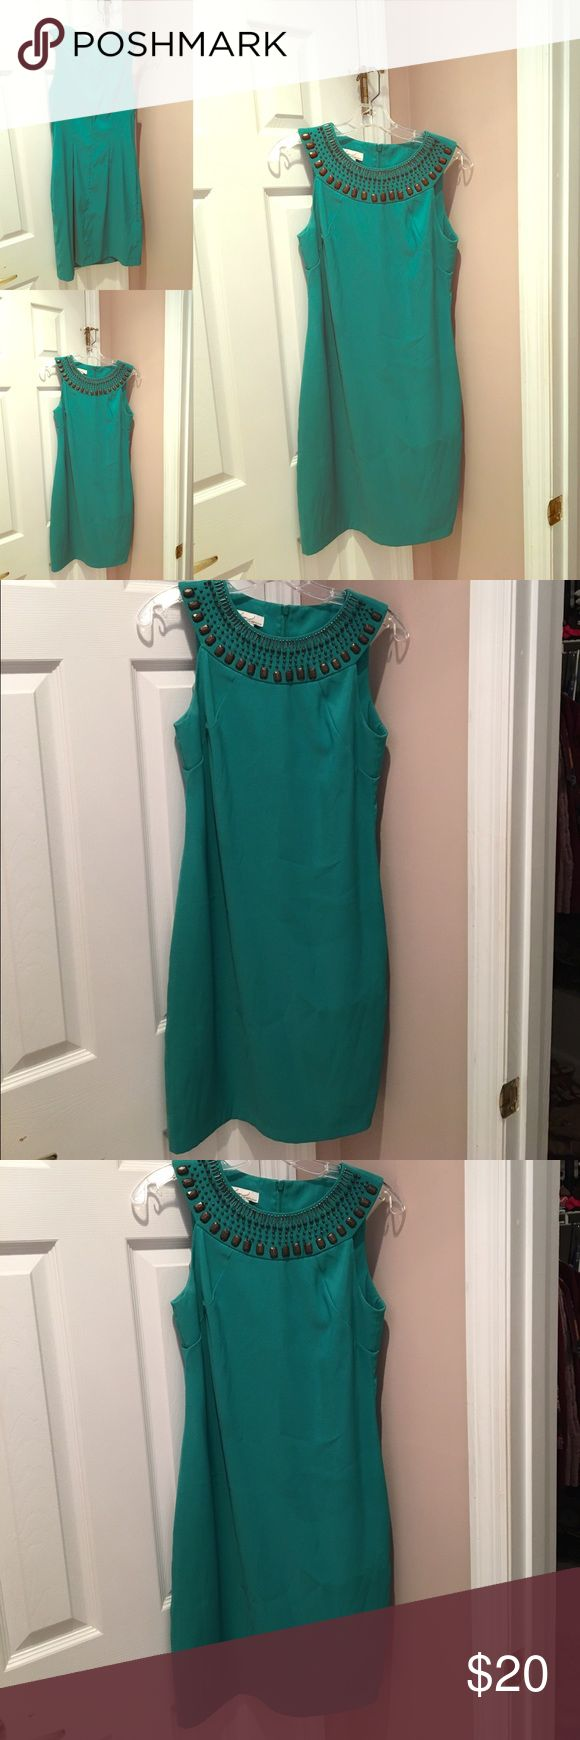 Kim Rogers Green Studded Dress!! Size 6 $20 Kim Rogers Green Shift Dress with studded collar! Gorgeous dress for work and night out!!! Size 6 Kim Rogers Dresses